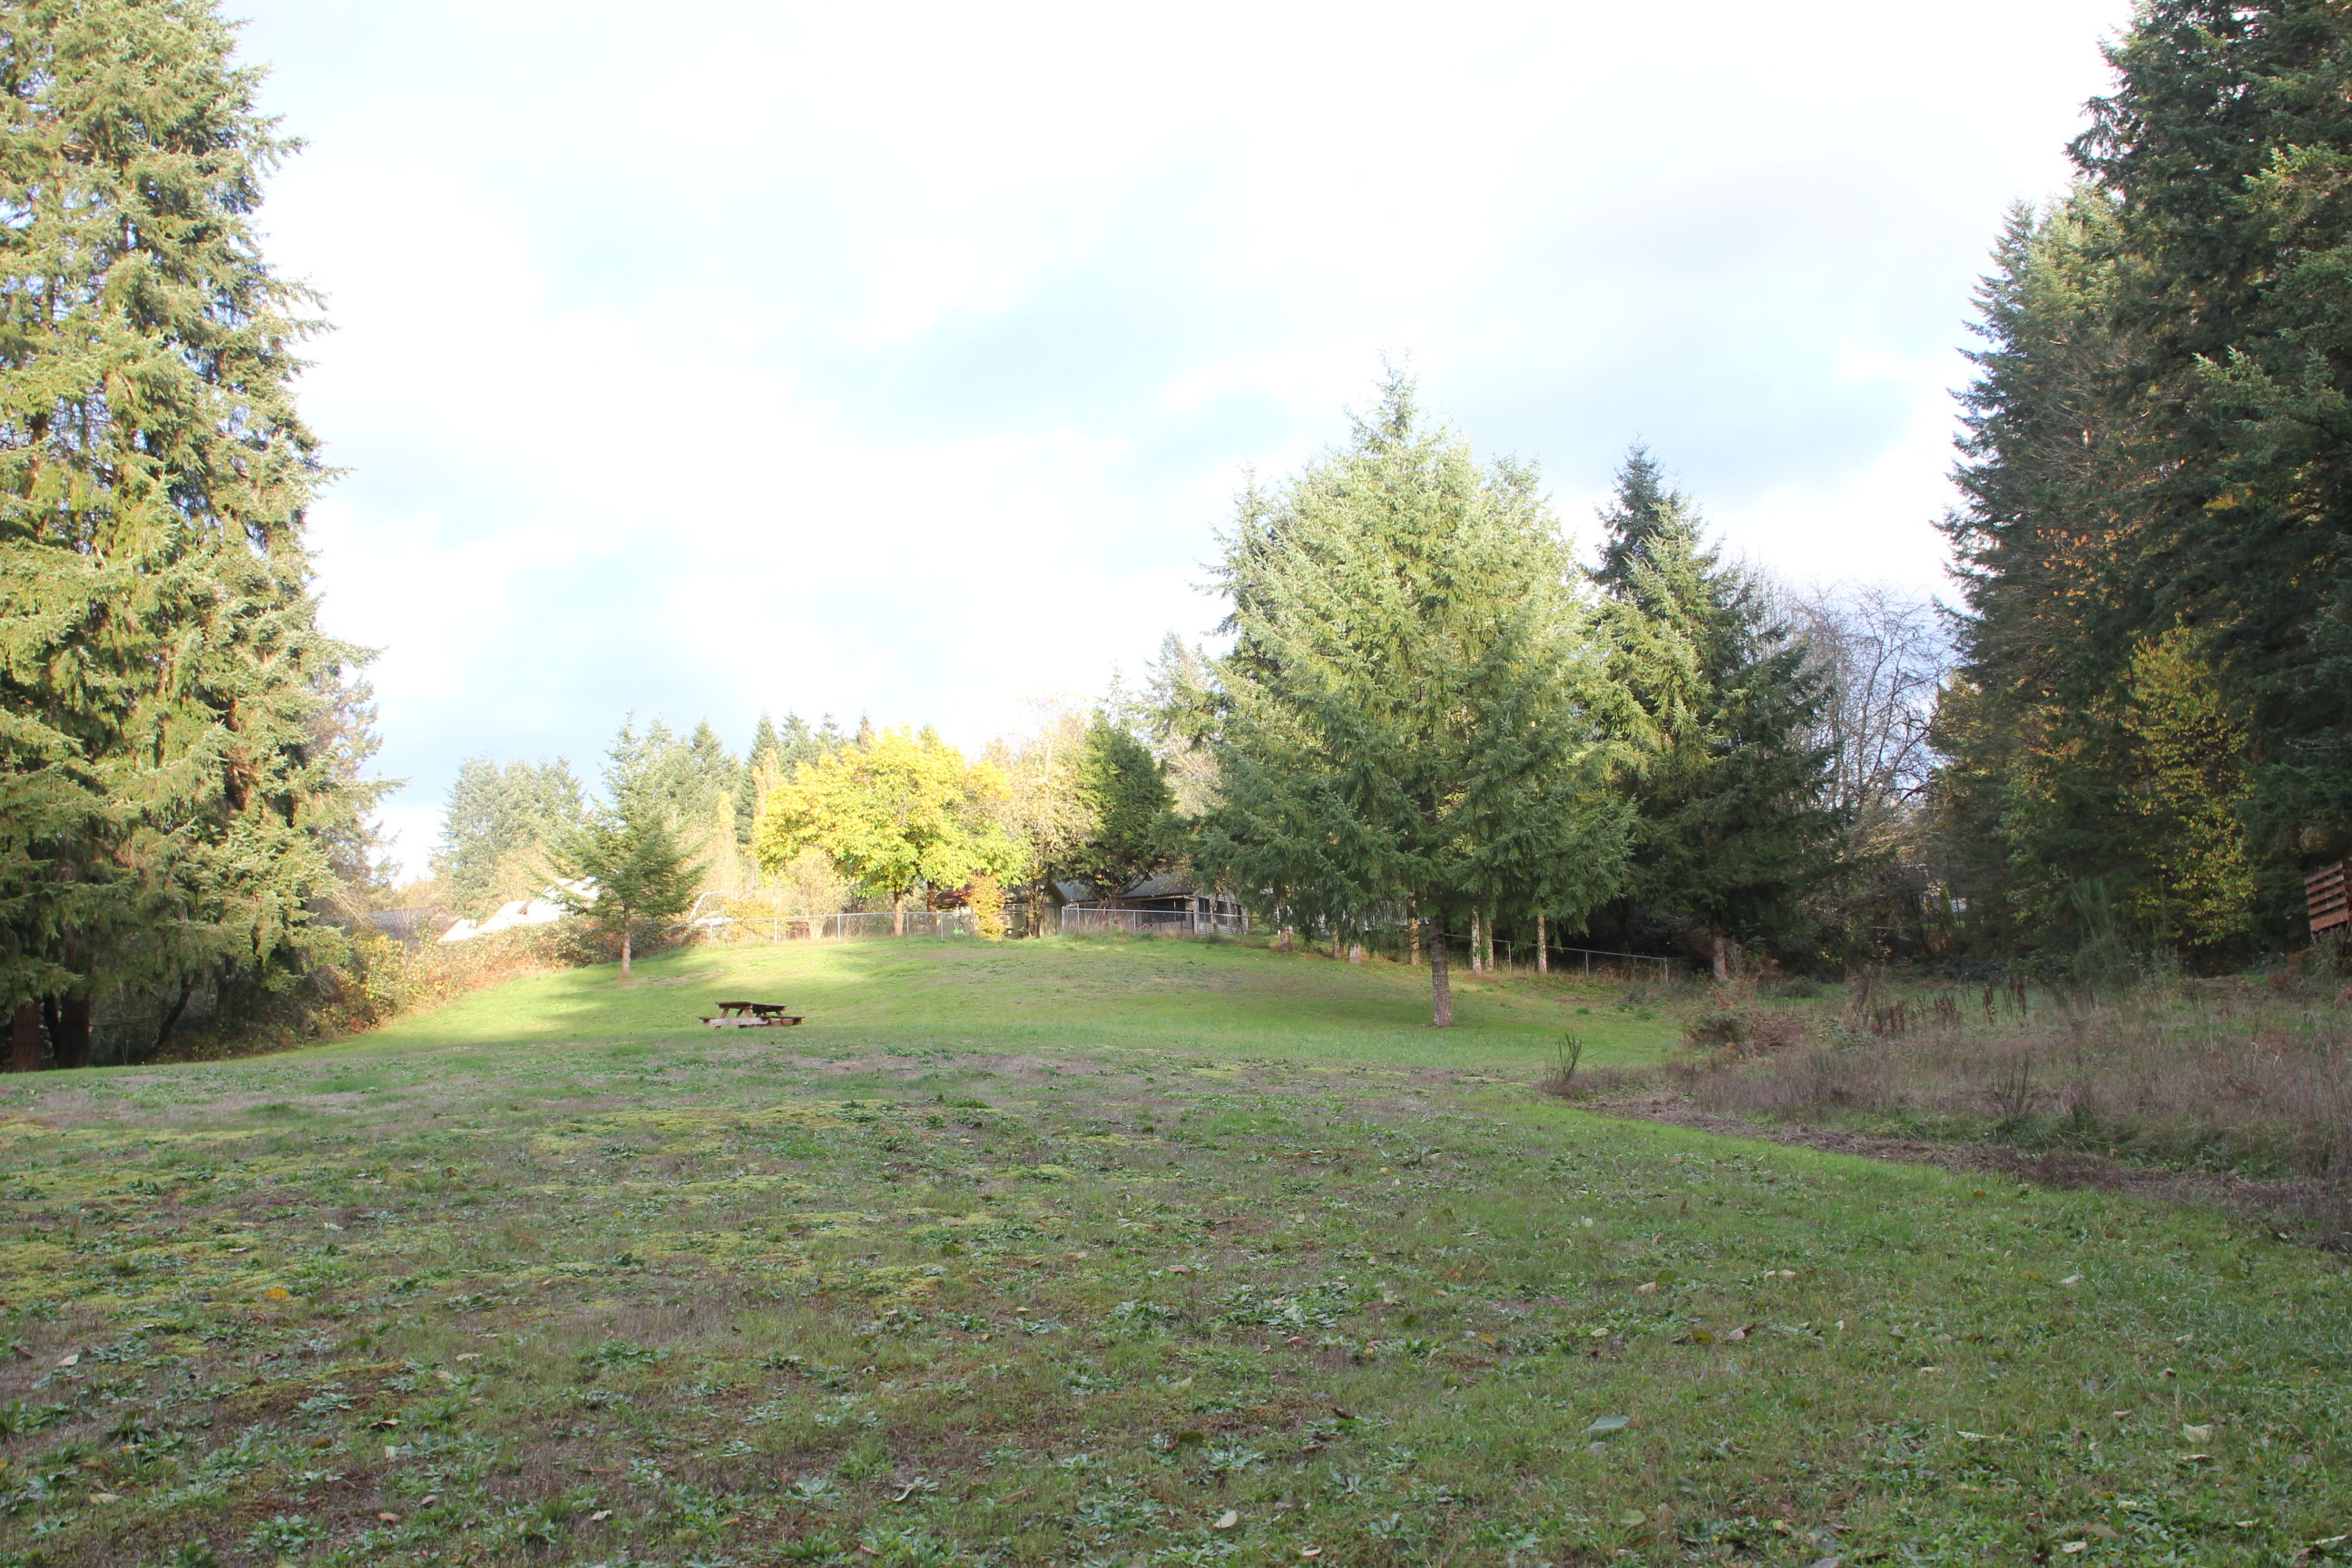 3 Bedroom Acreage horse property for sale in port orchard